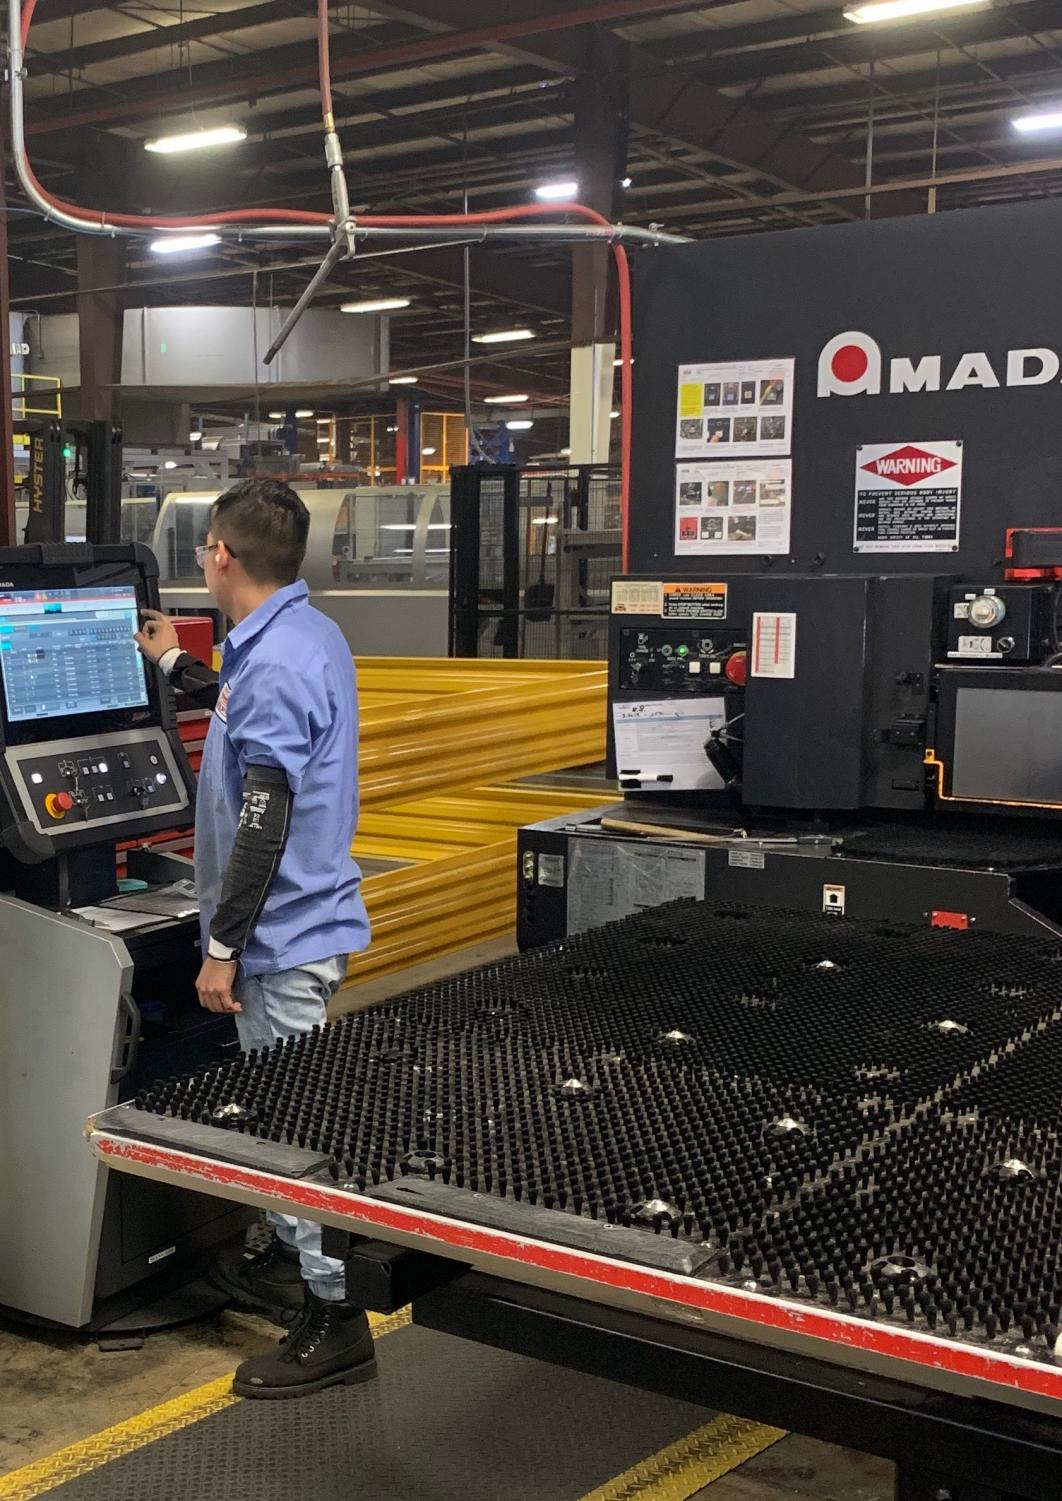 Late into his shift, first-year student Fausto Gallardo is seen programming his machine at the KNAACK manufacturing plant in Crystal Lake, Illinois.